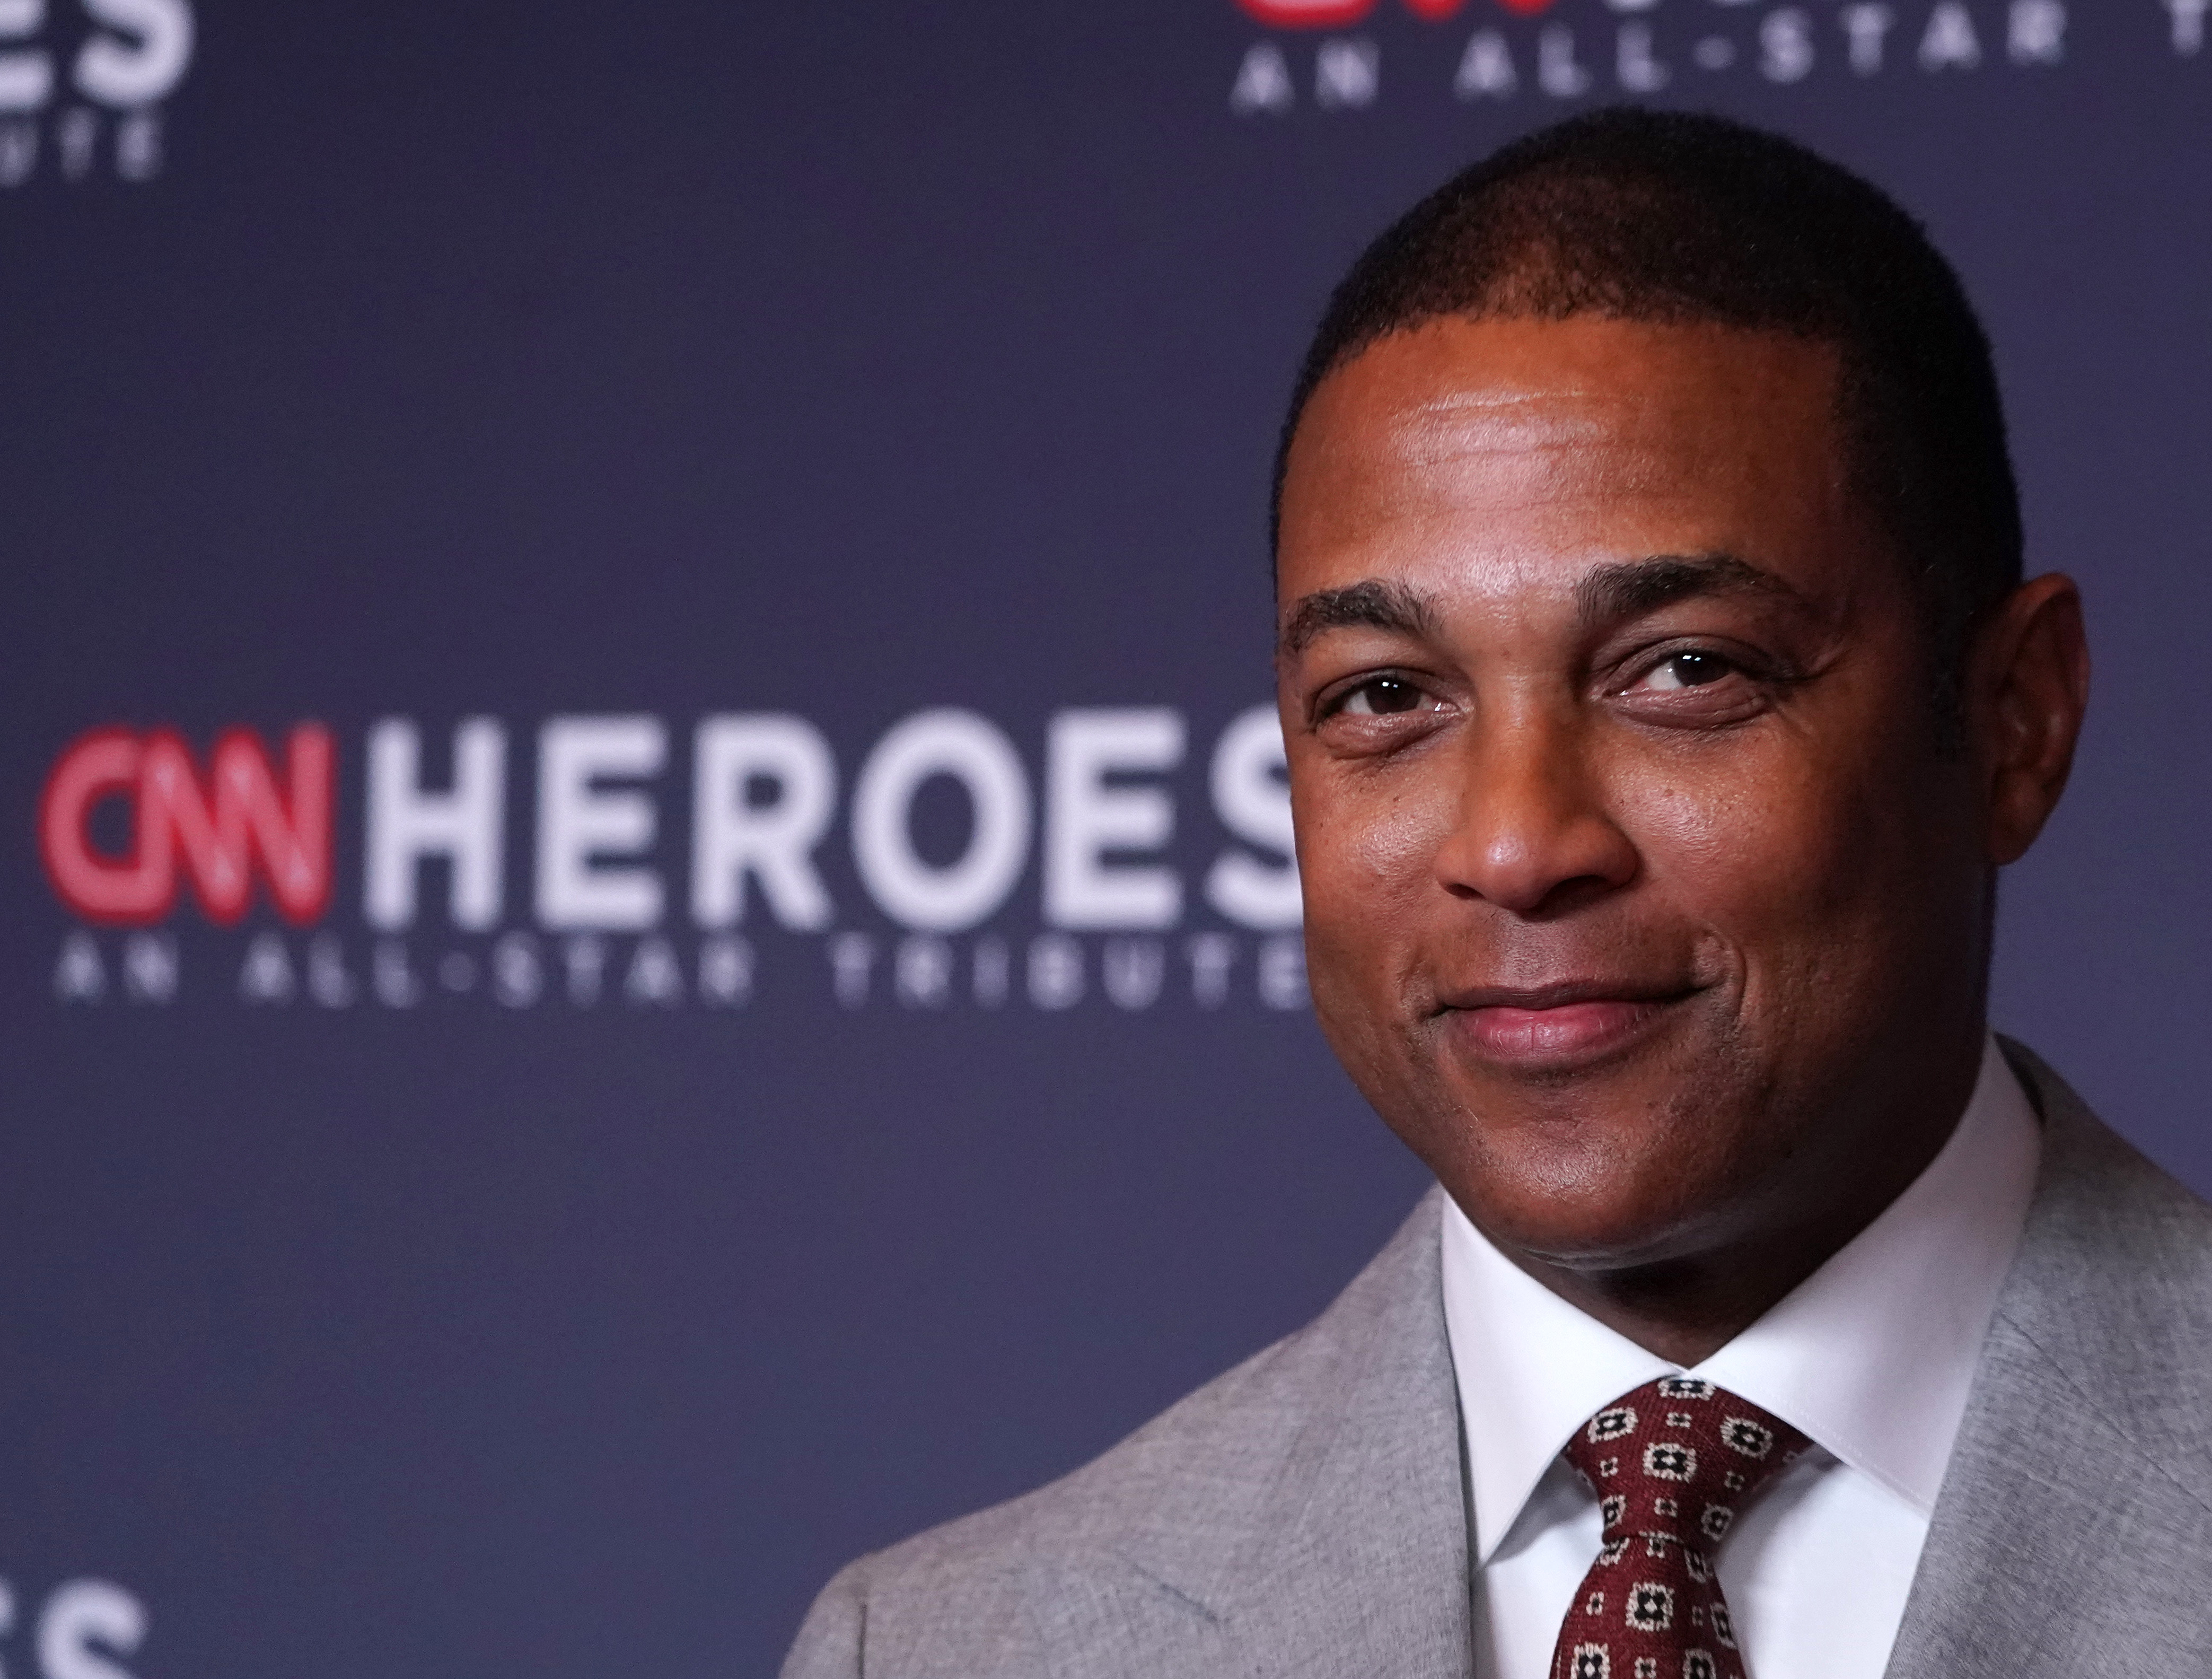 Westlake Legal Group Don-Lemon-1 CNN's Don Lemon shames GOP 'enablers,' says they're also 'responsible' for Trump's impeachment Joseph Wulfsohn fox-news/politics/trump-impeachment-inquiry fox-news/politics/house-of-representatives/republicans fox-news/media fox news fnc/media fnc article 749c16f5-a39b-5483-902b-5574443c88dd